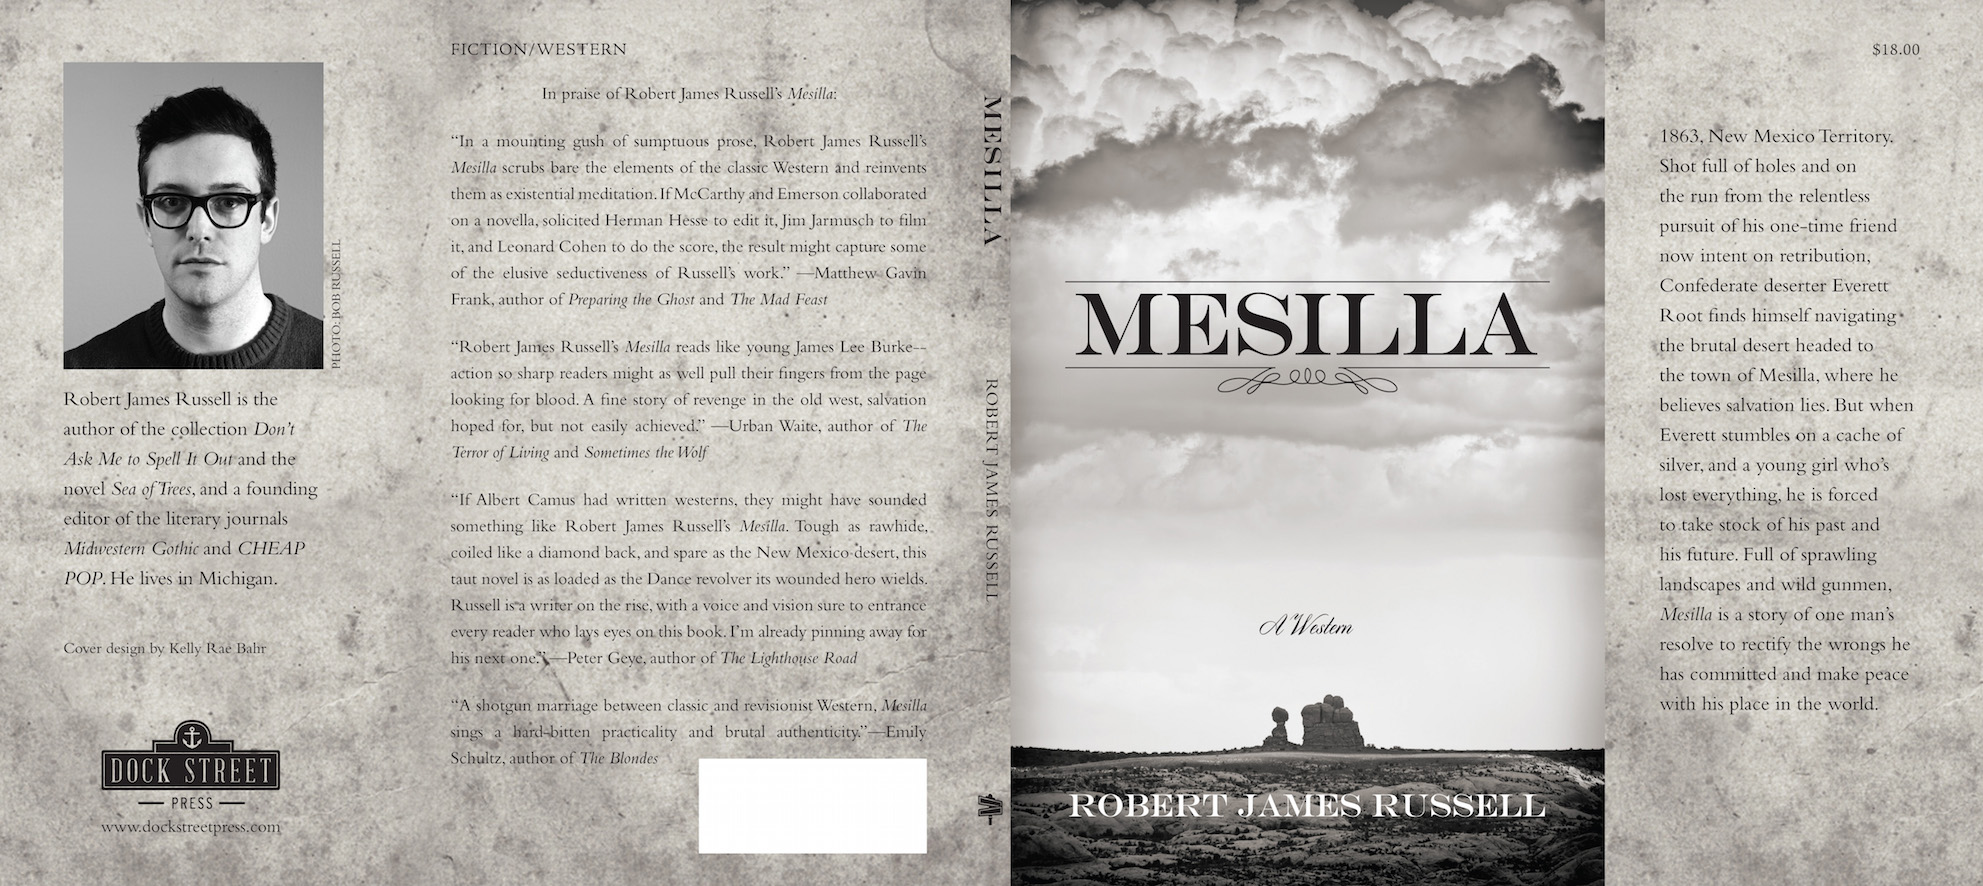 Mesilla_full cover_final